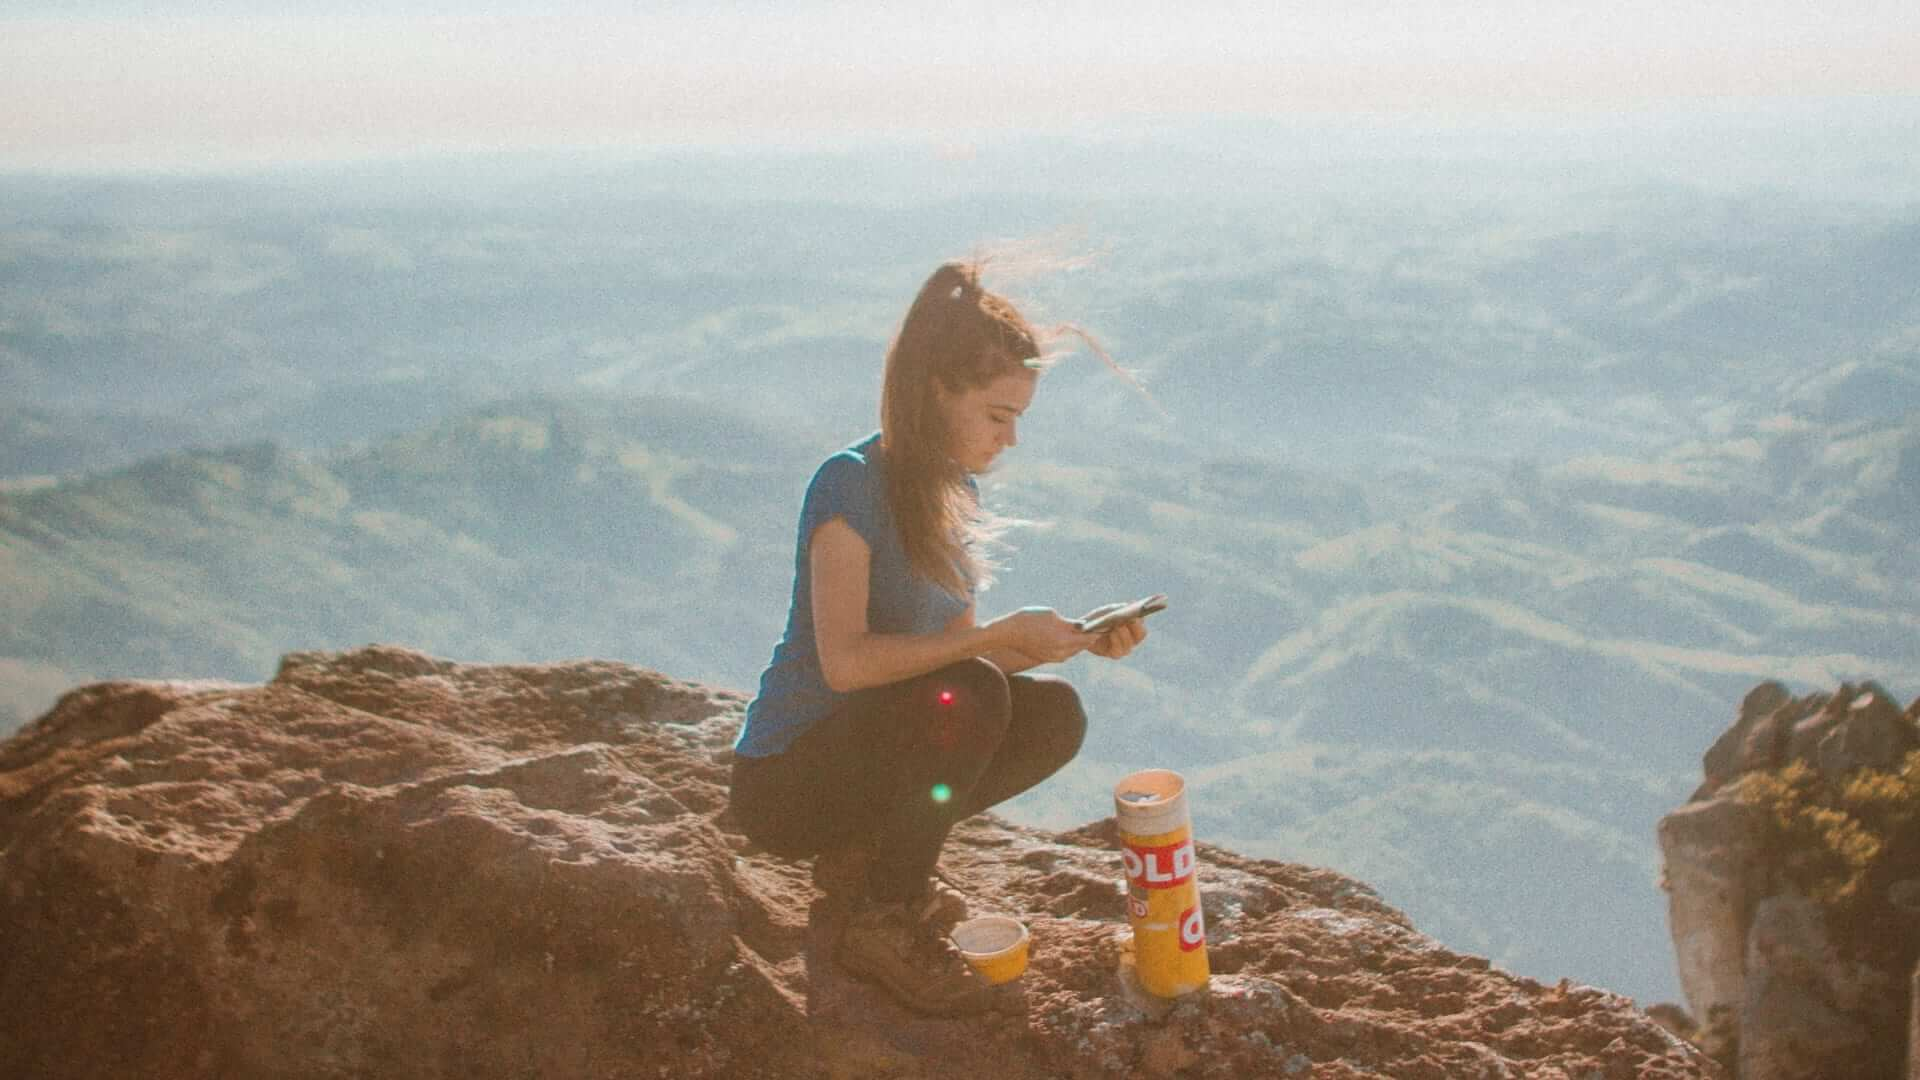 A woman is sitting in a squatting position and holding a phone on a mountain in Brazil.